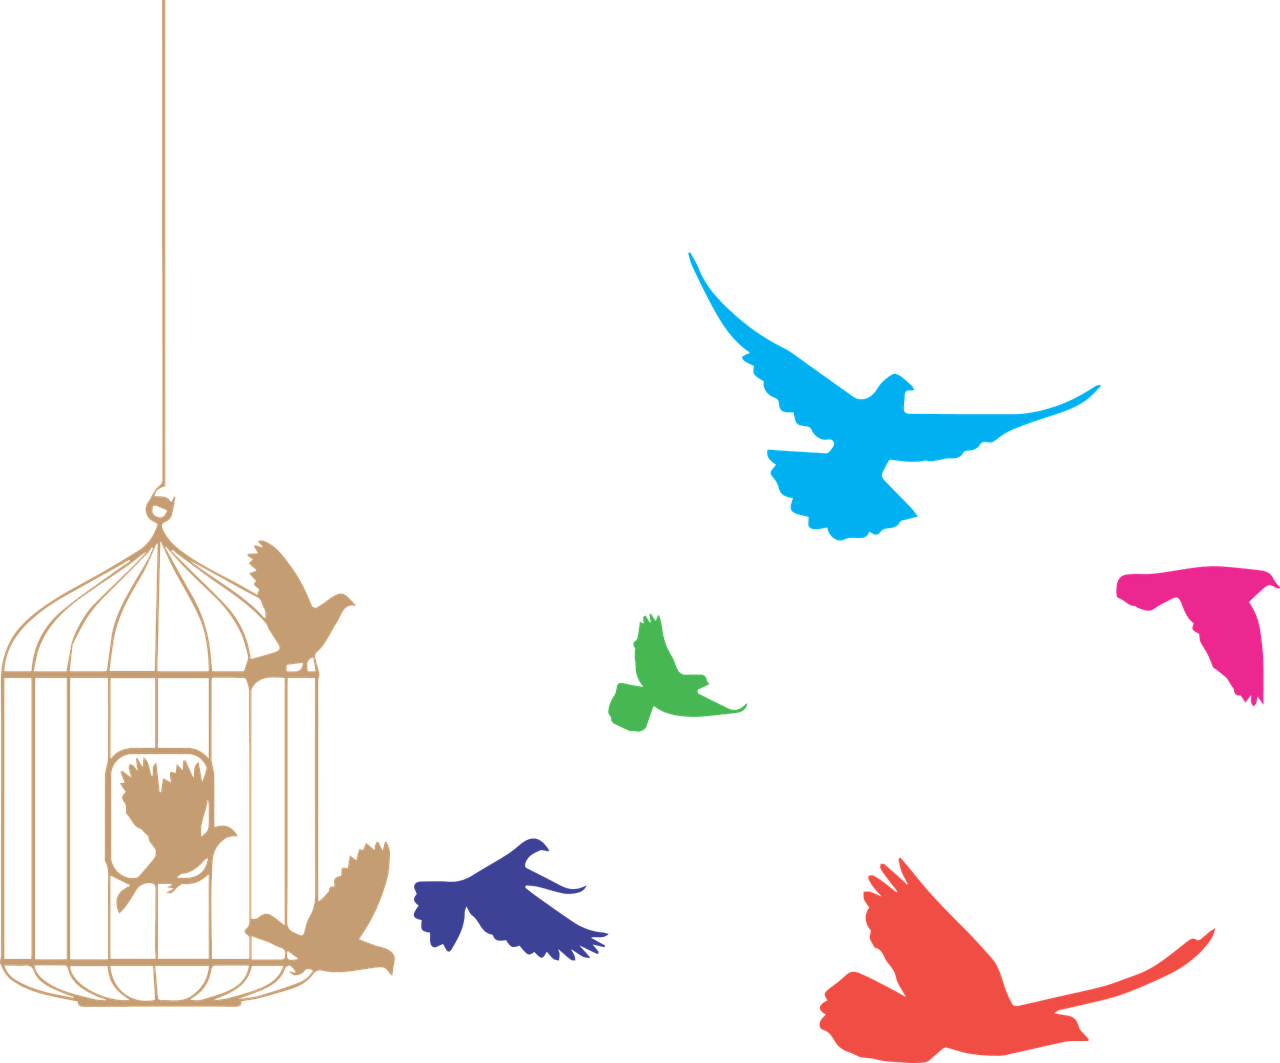 Birds flying. From cage clipart transparent